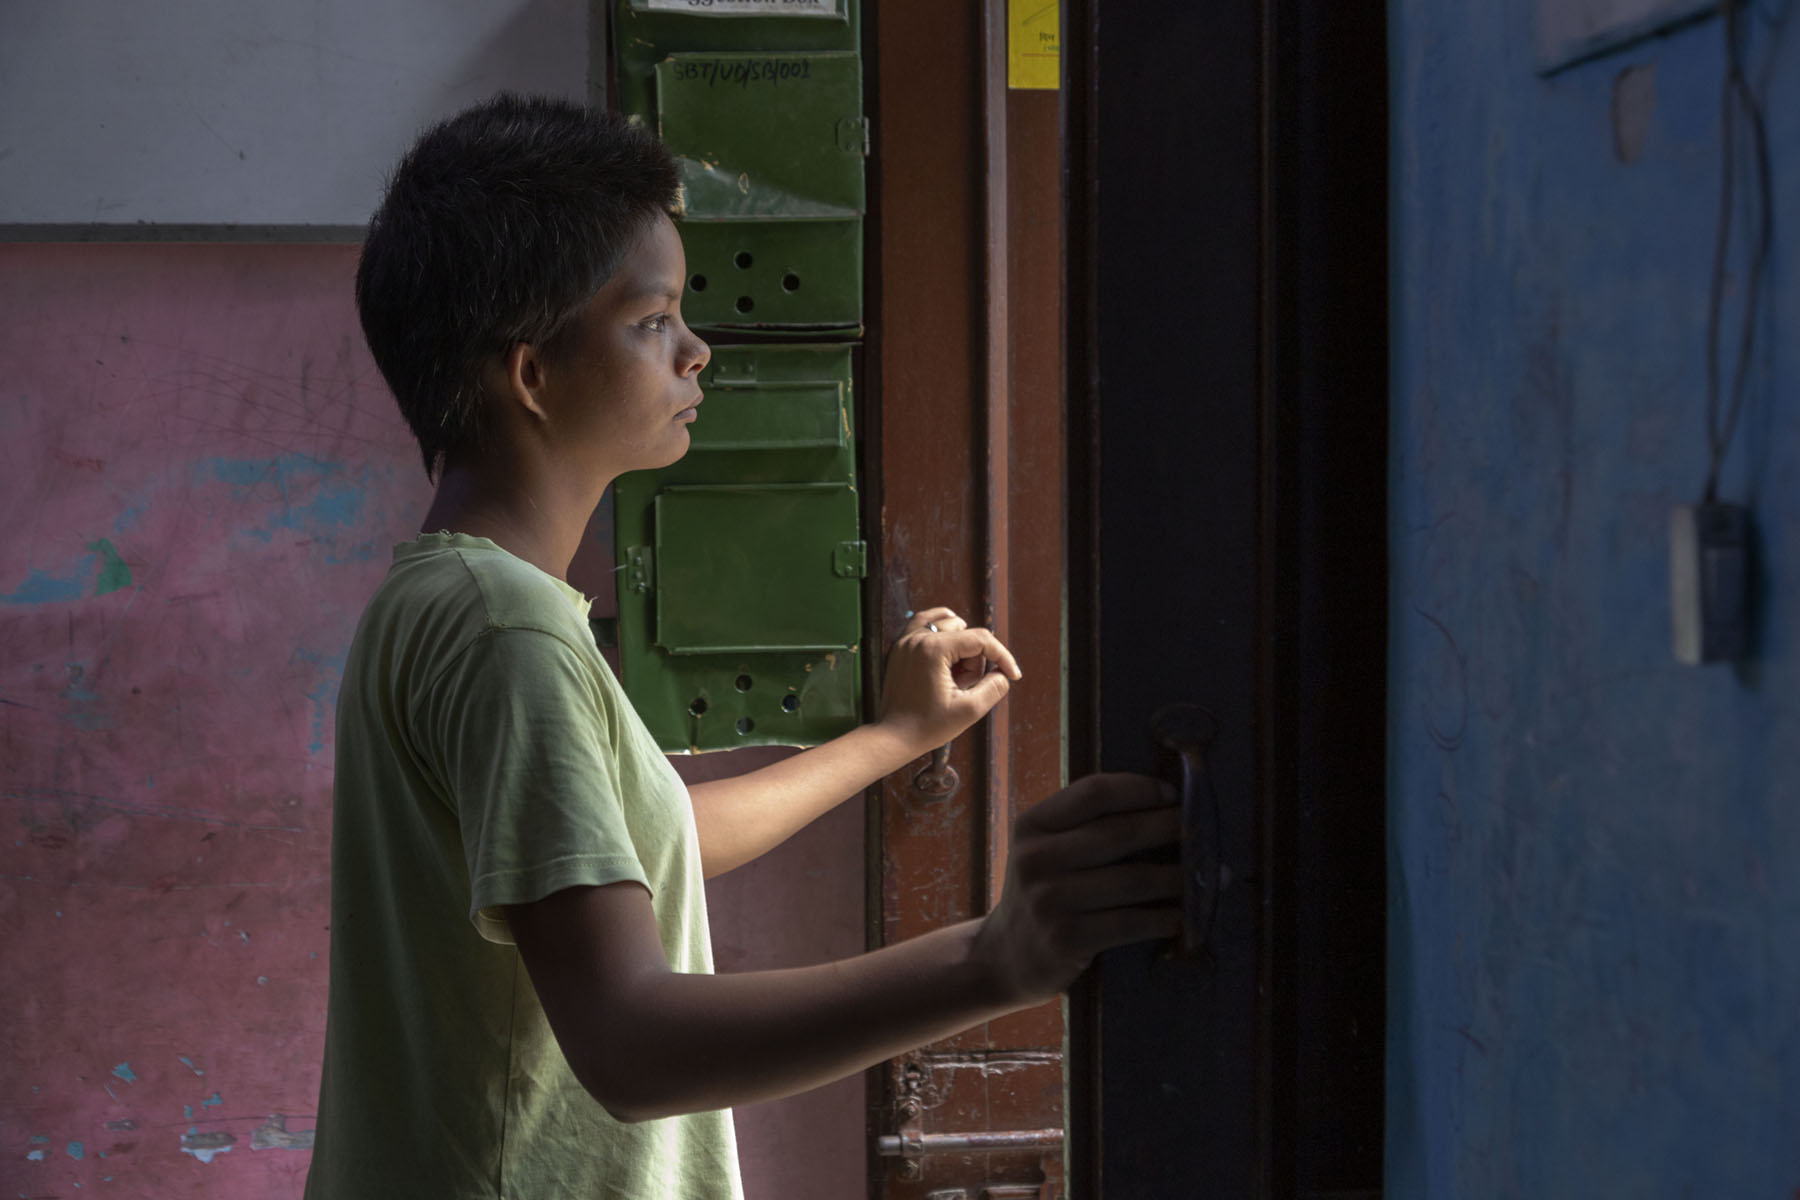 A side shot of Israna in a pista green T-shirt, standing and looking out of a door. She has been photographed in profile, from the waist up. Sunlight is falling on her face and chest. Her hands are raised, holding open the brown wooden shutters of the door.